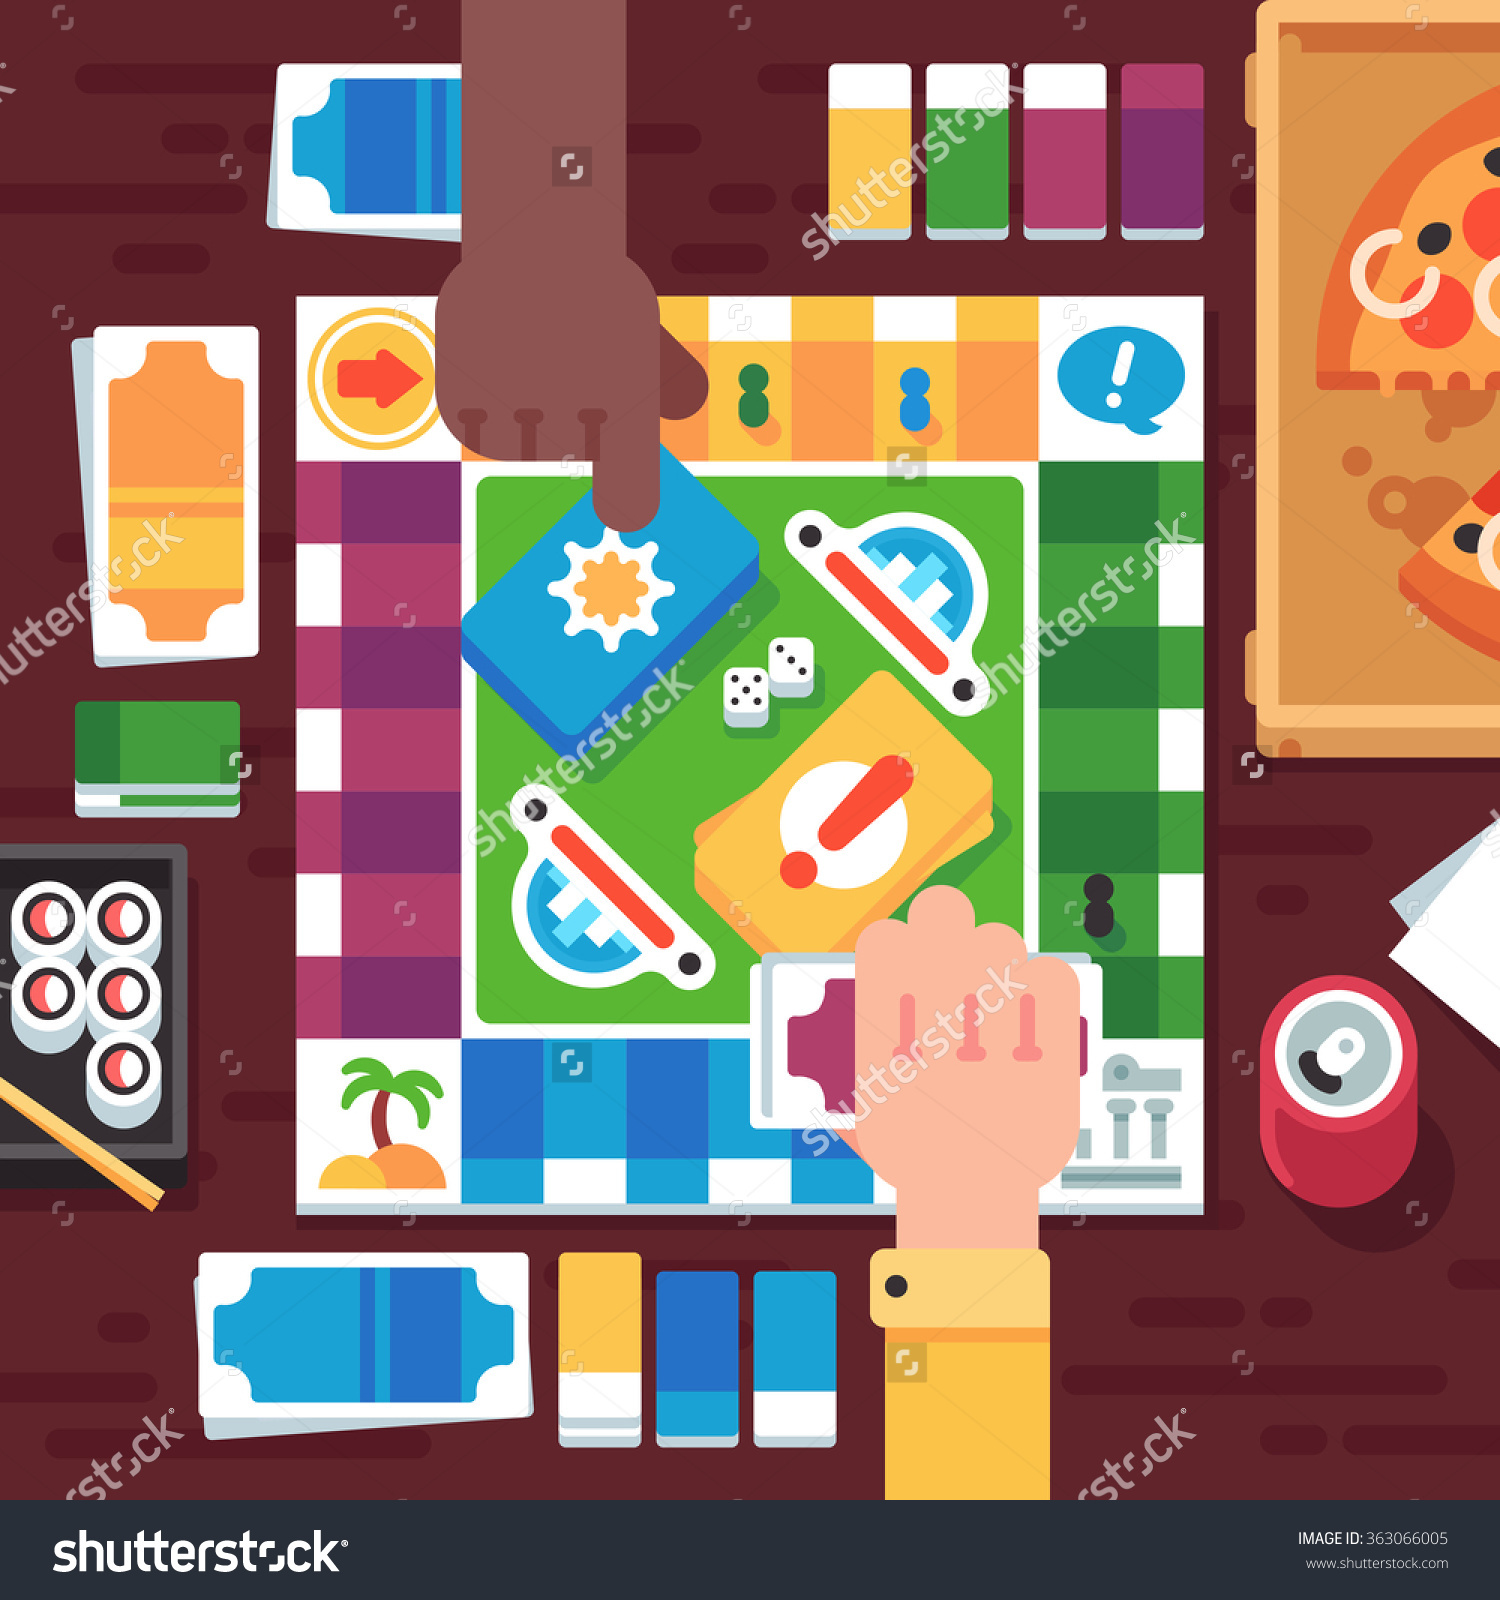 Tabletop Gaming Clipart (24+).